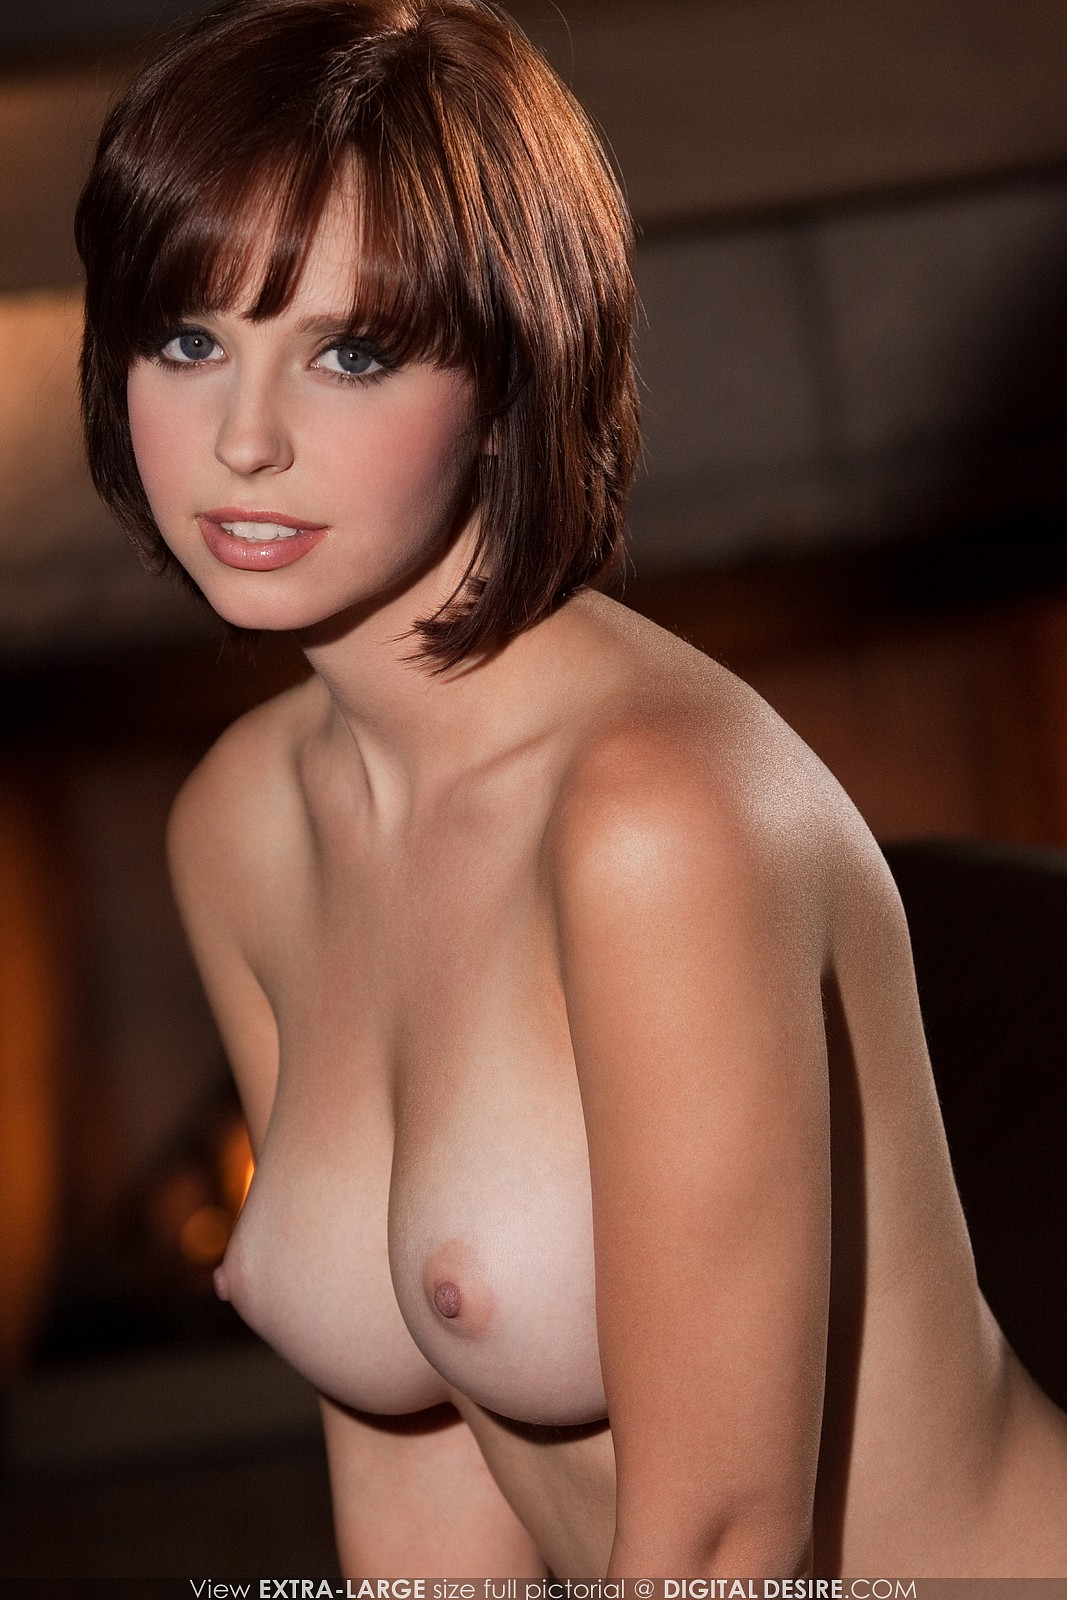 hayden winters - has some of the most amazing natural breast we have